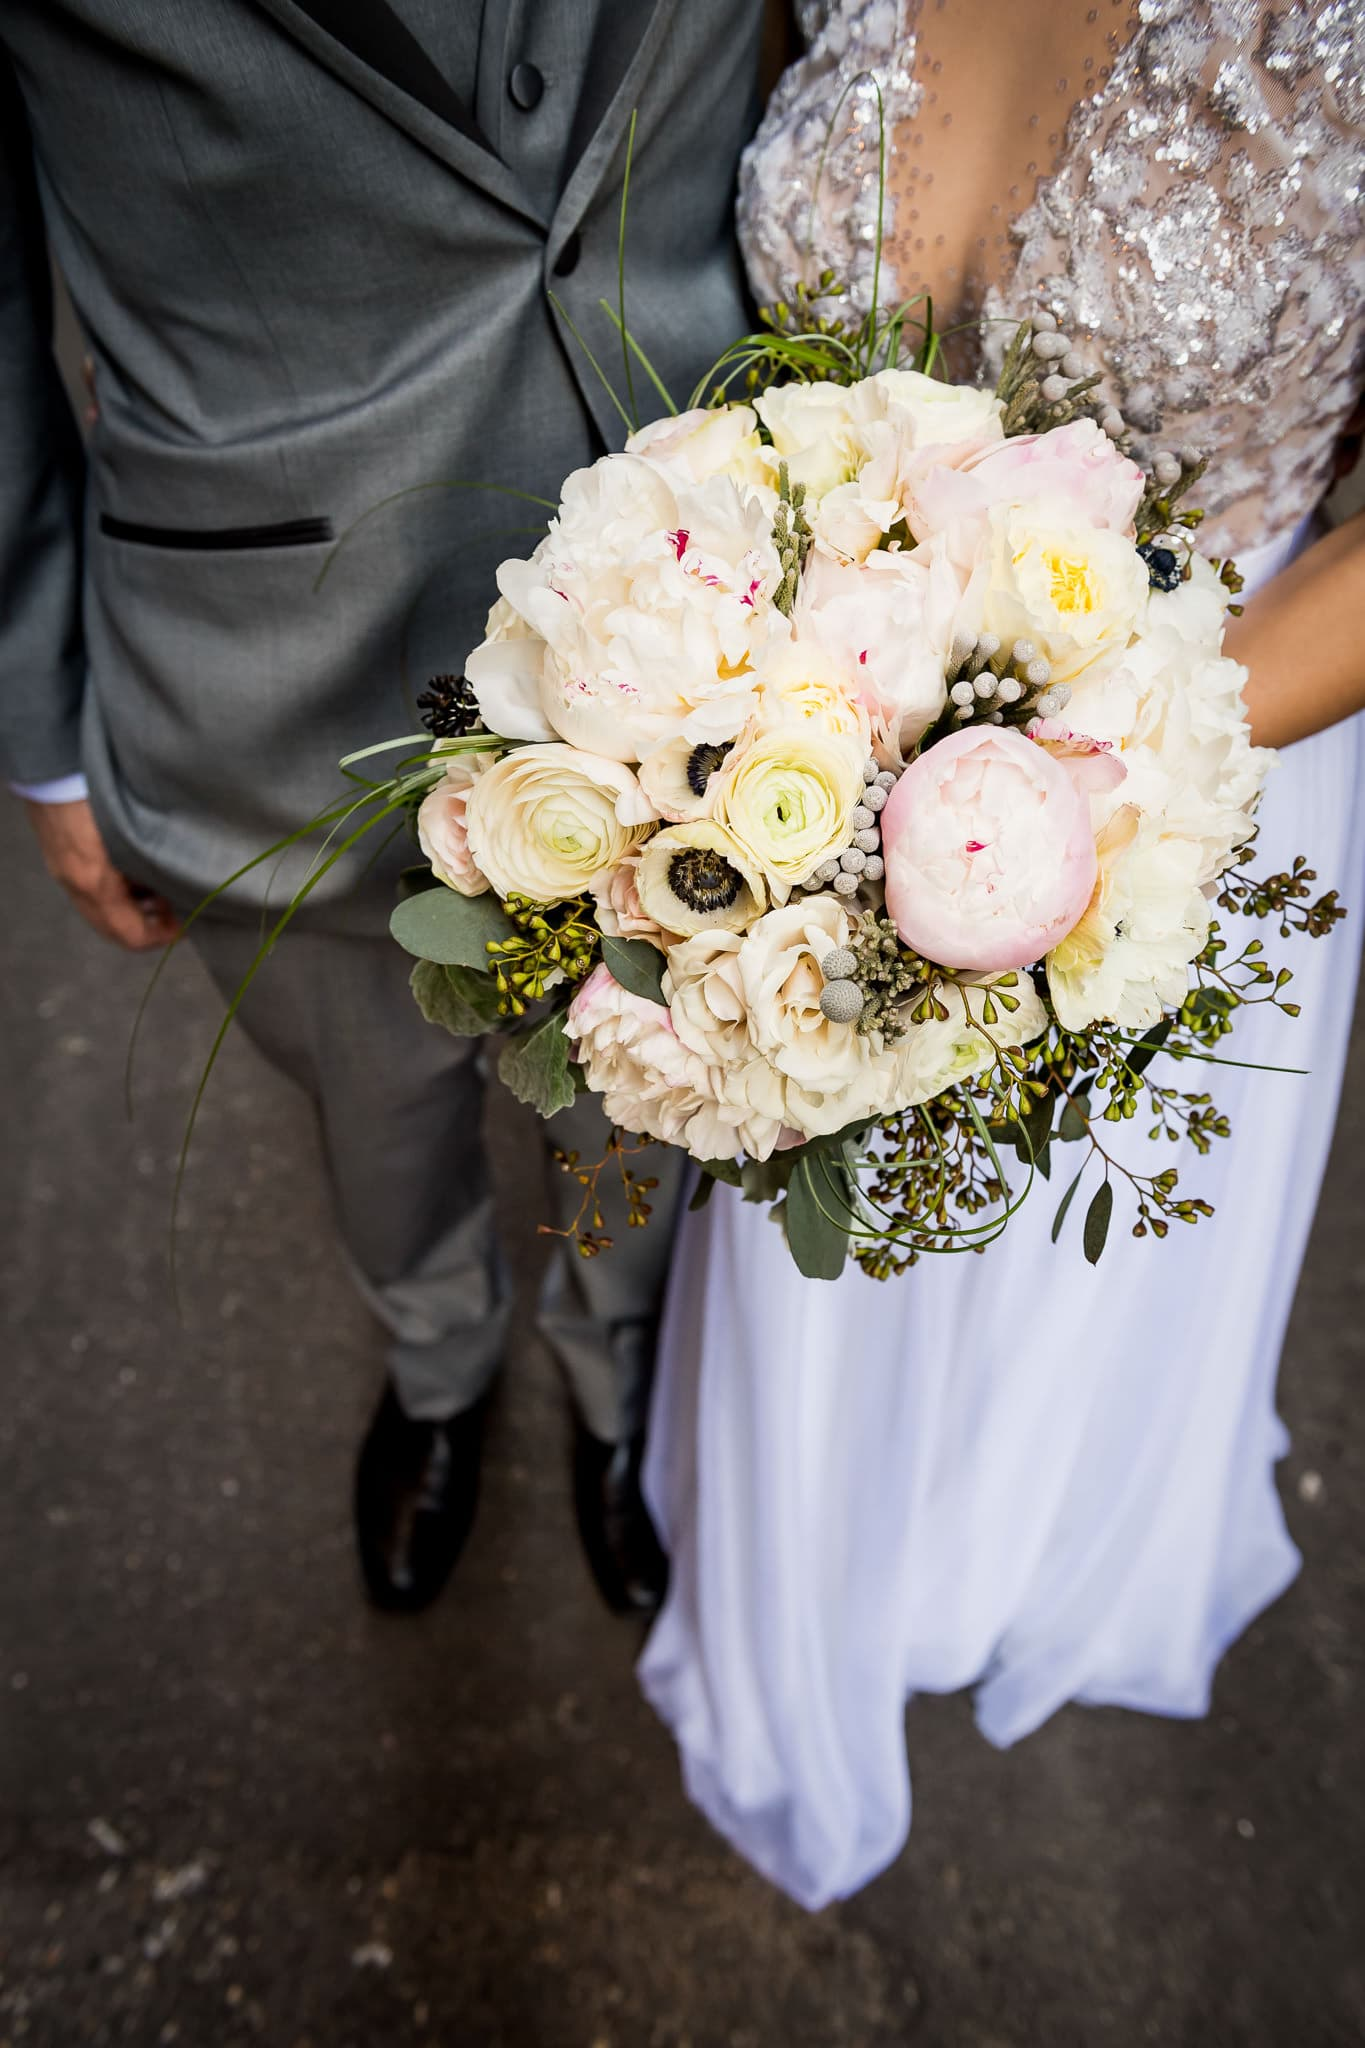 Bridal bouquet by Artemisia Studios at Hewing Hotel